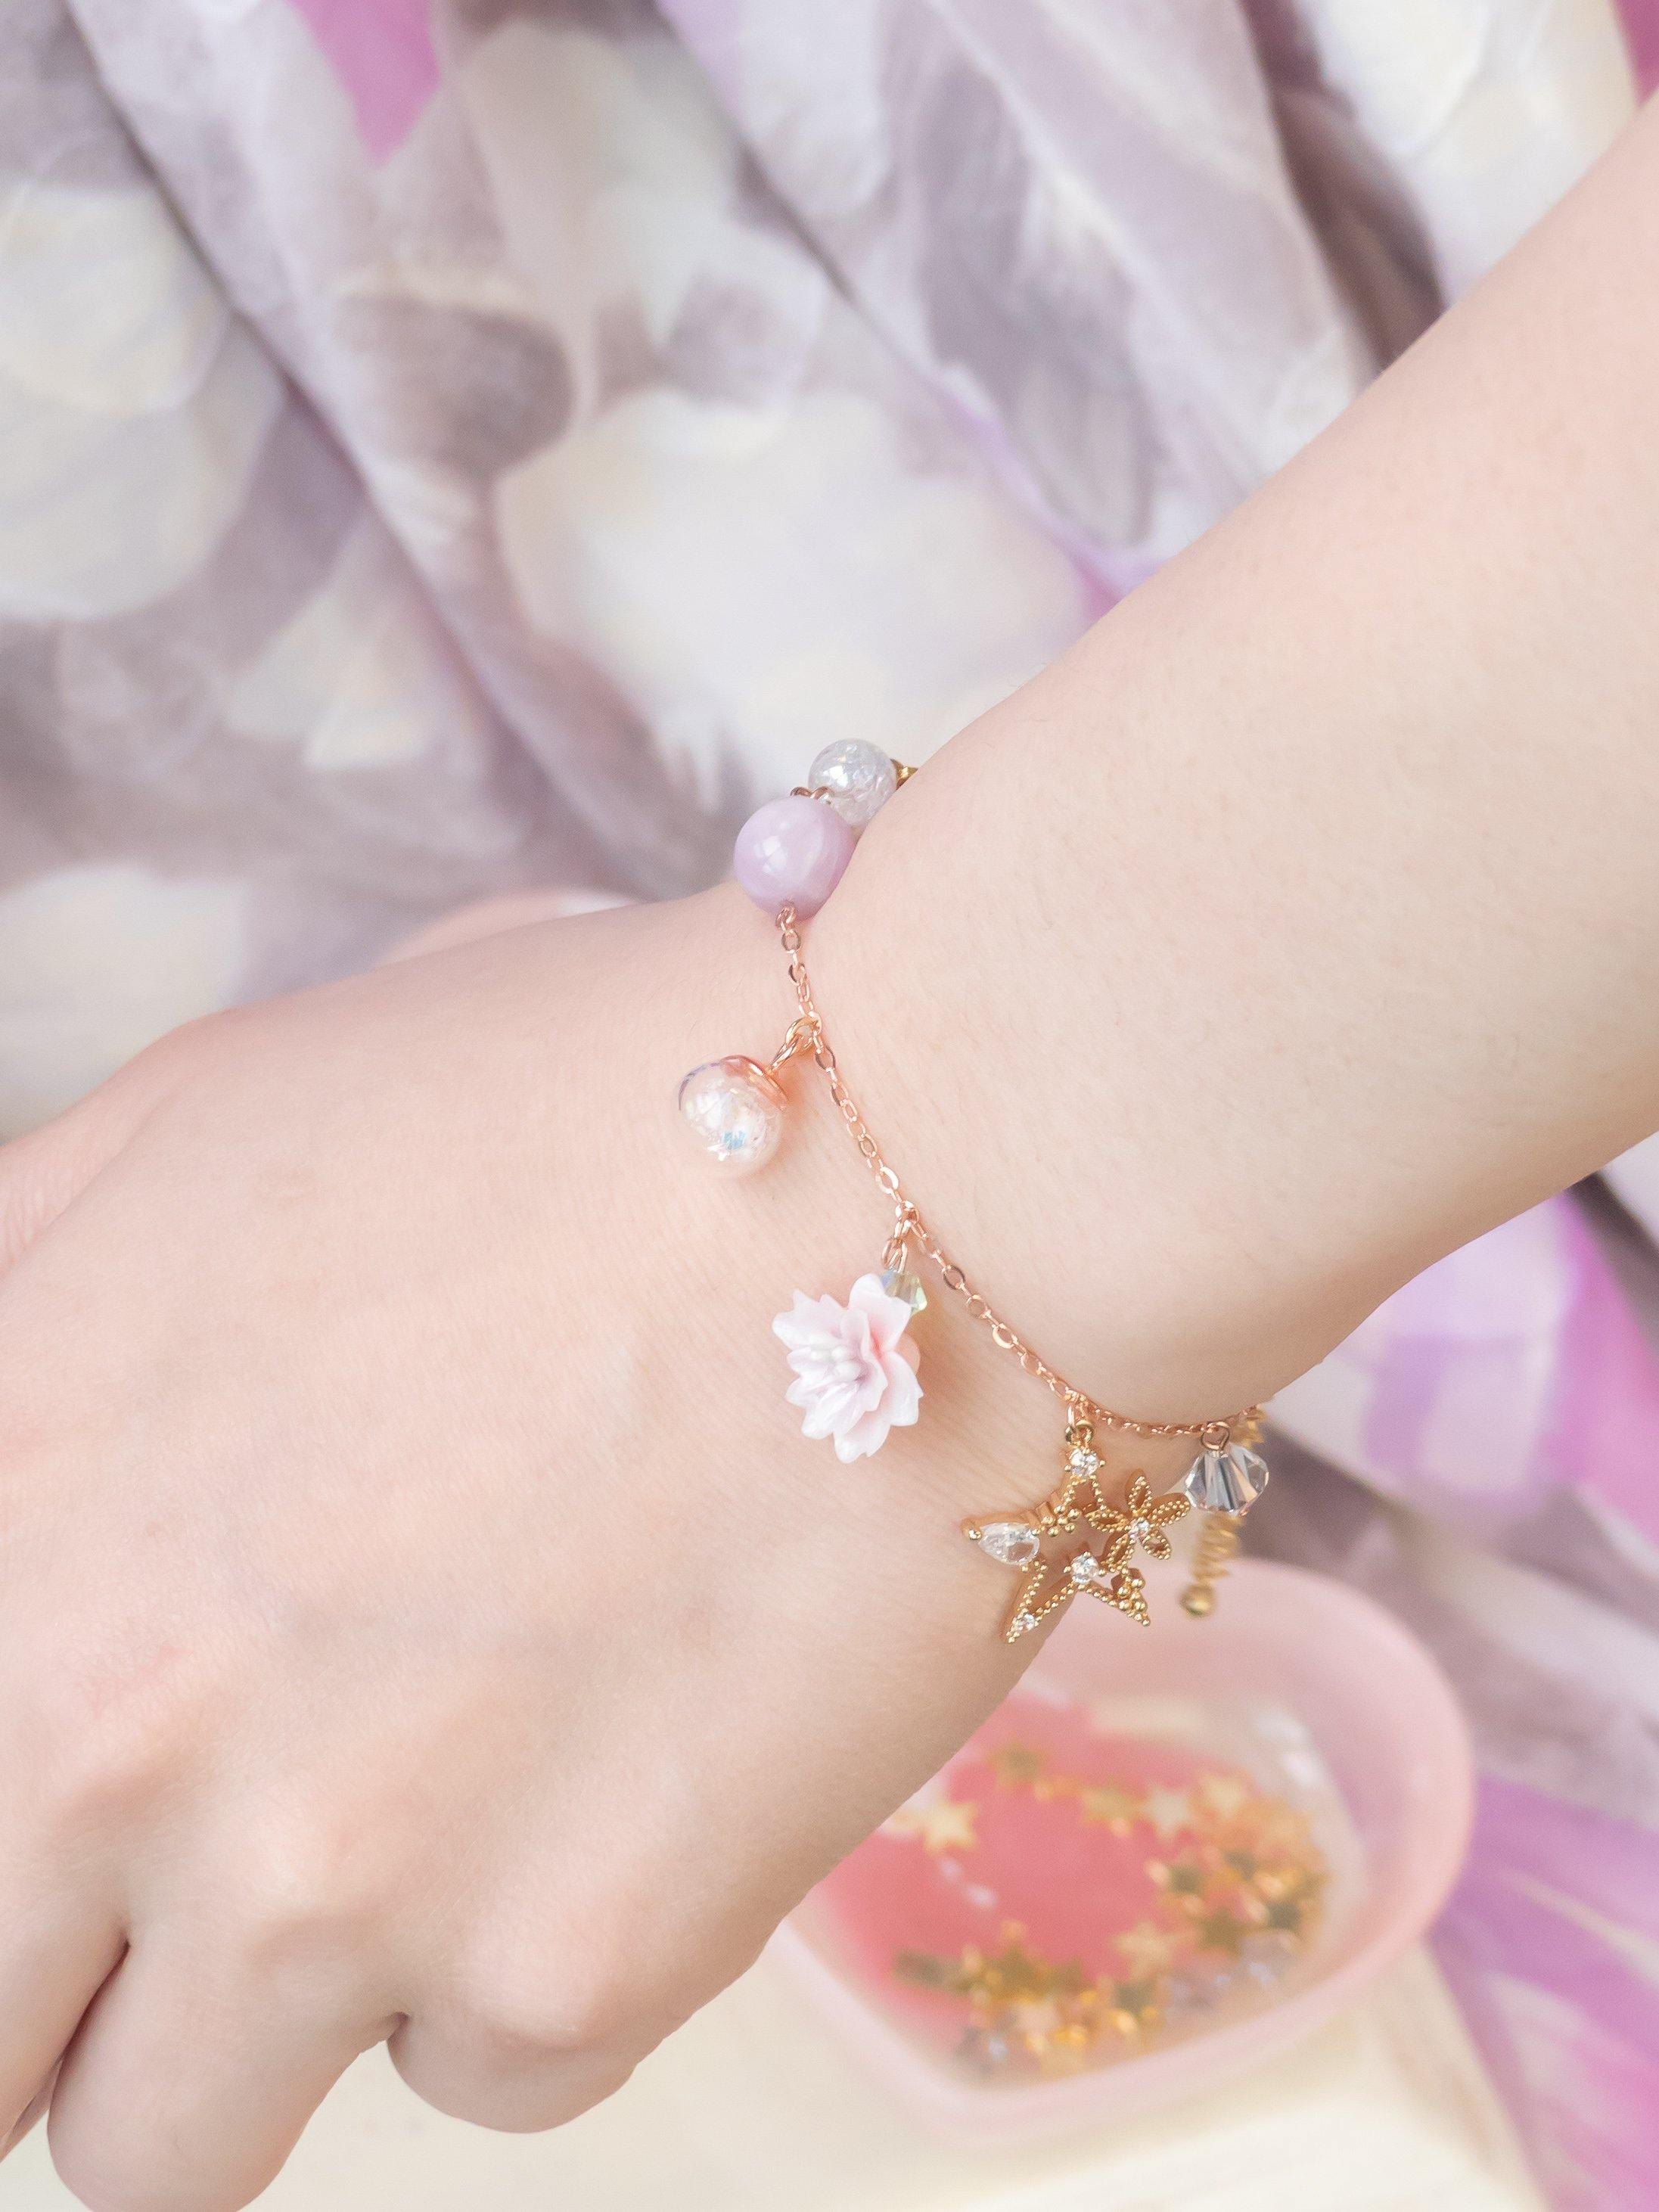 """Missing You"" Tailor-made Charm 925 Silver Bracelet"